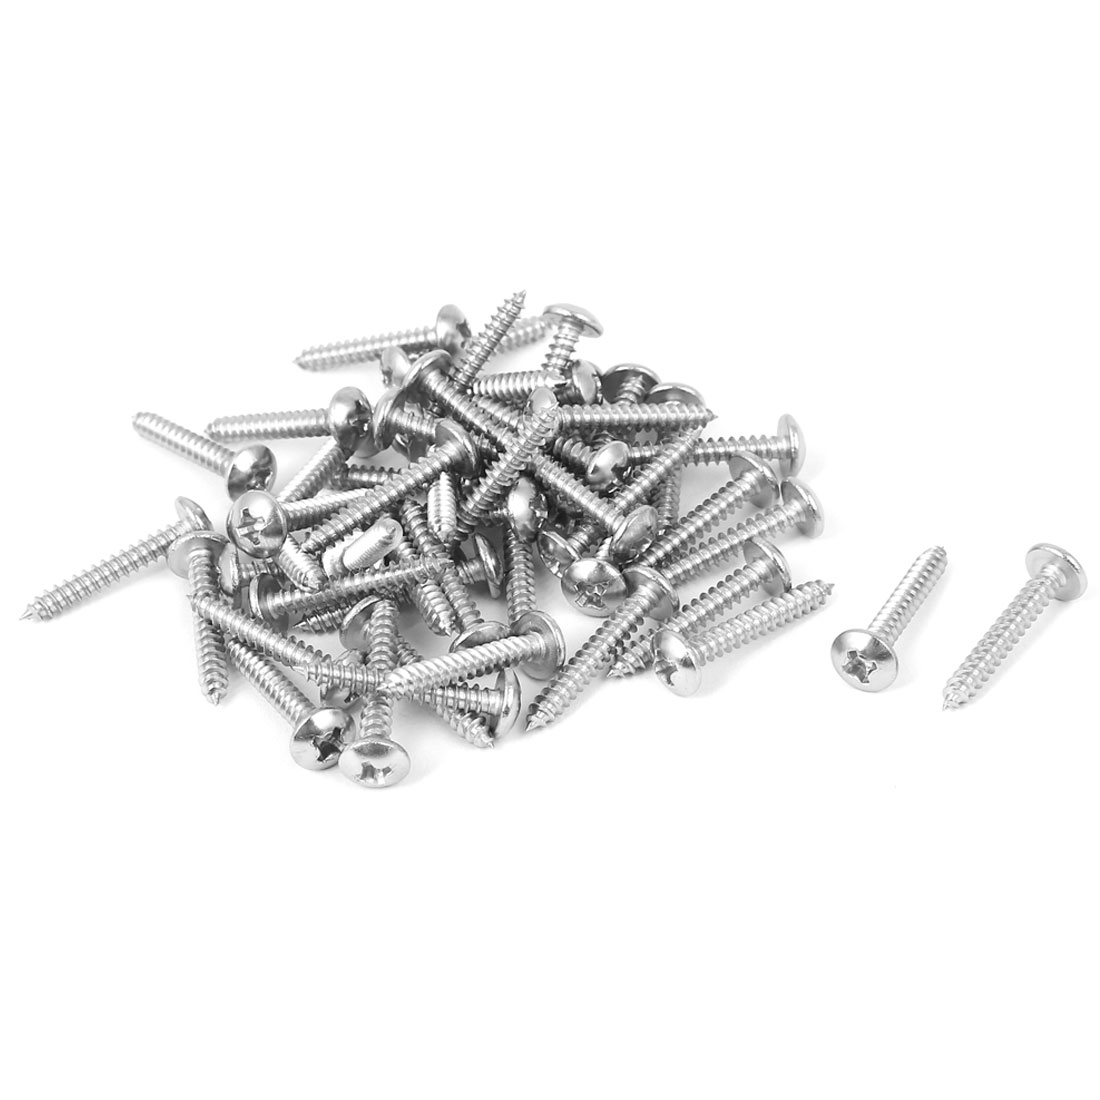 #4 M2.9x19mm Stainless Steel Phillips Truss Head Self Tapping Screws 50pcs